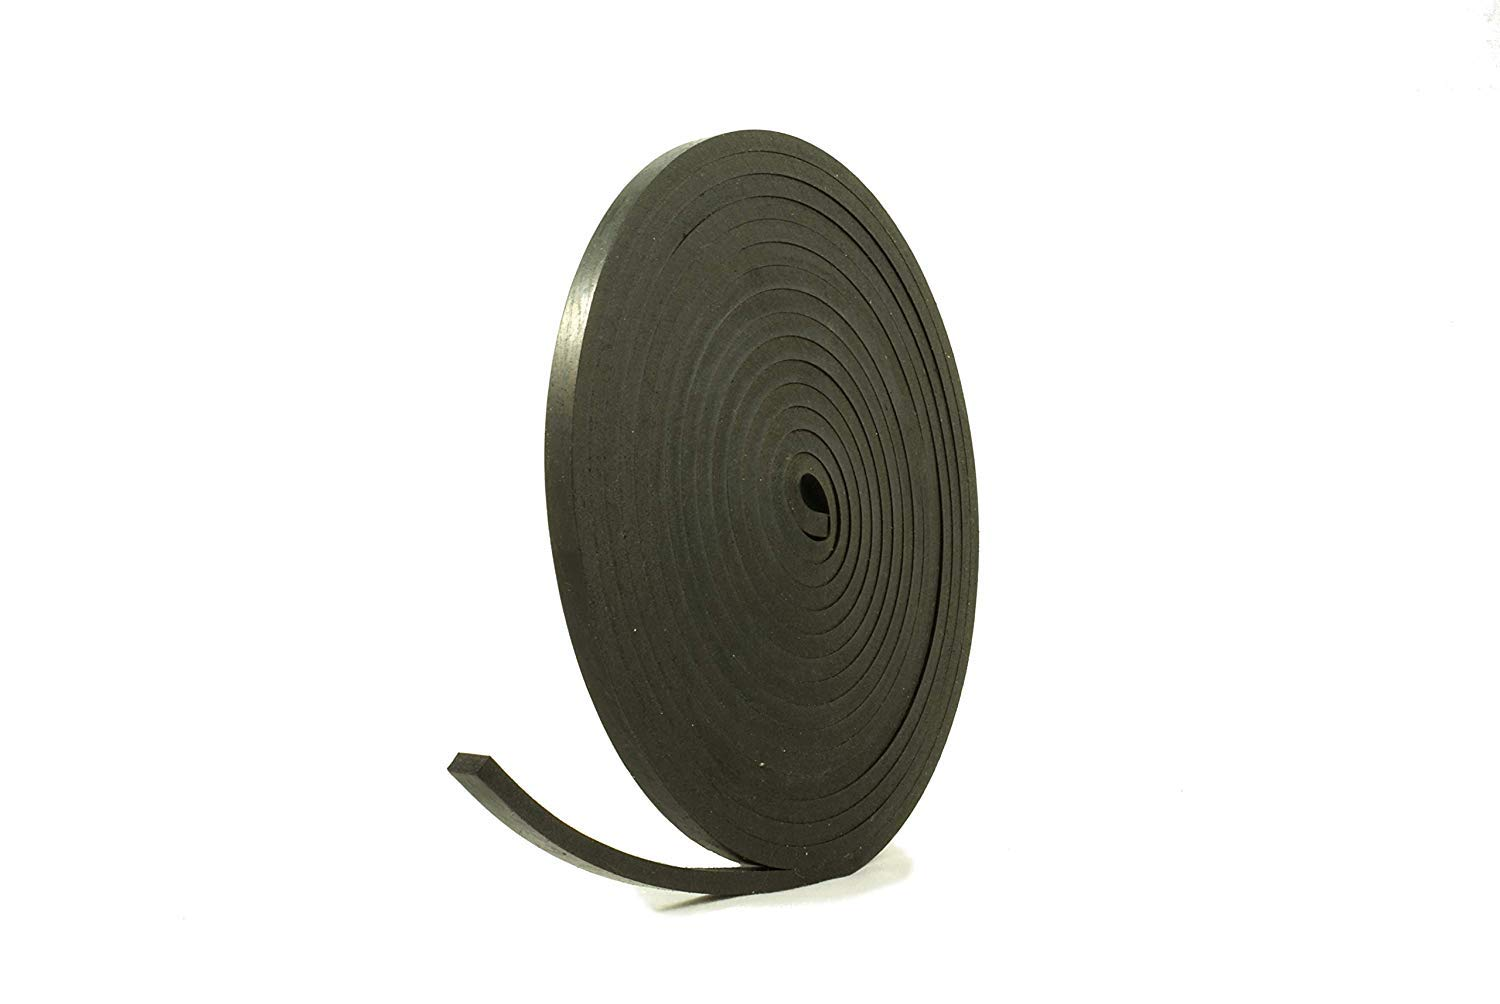 Solid Neoprene Black Rubber Strip 10mm wide x 8mm thick x 5m long